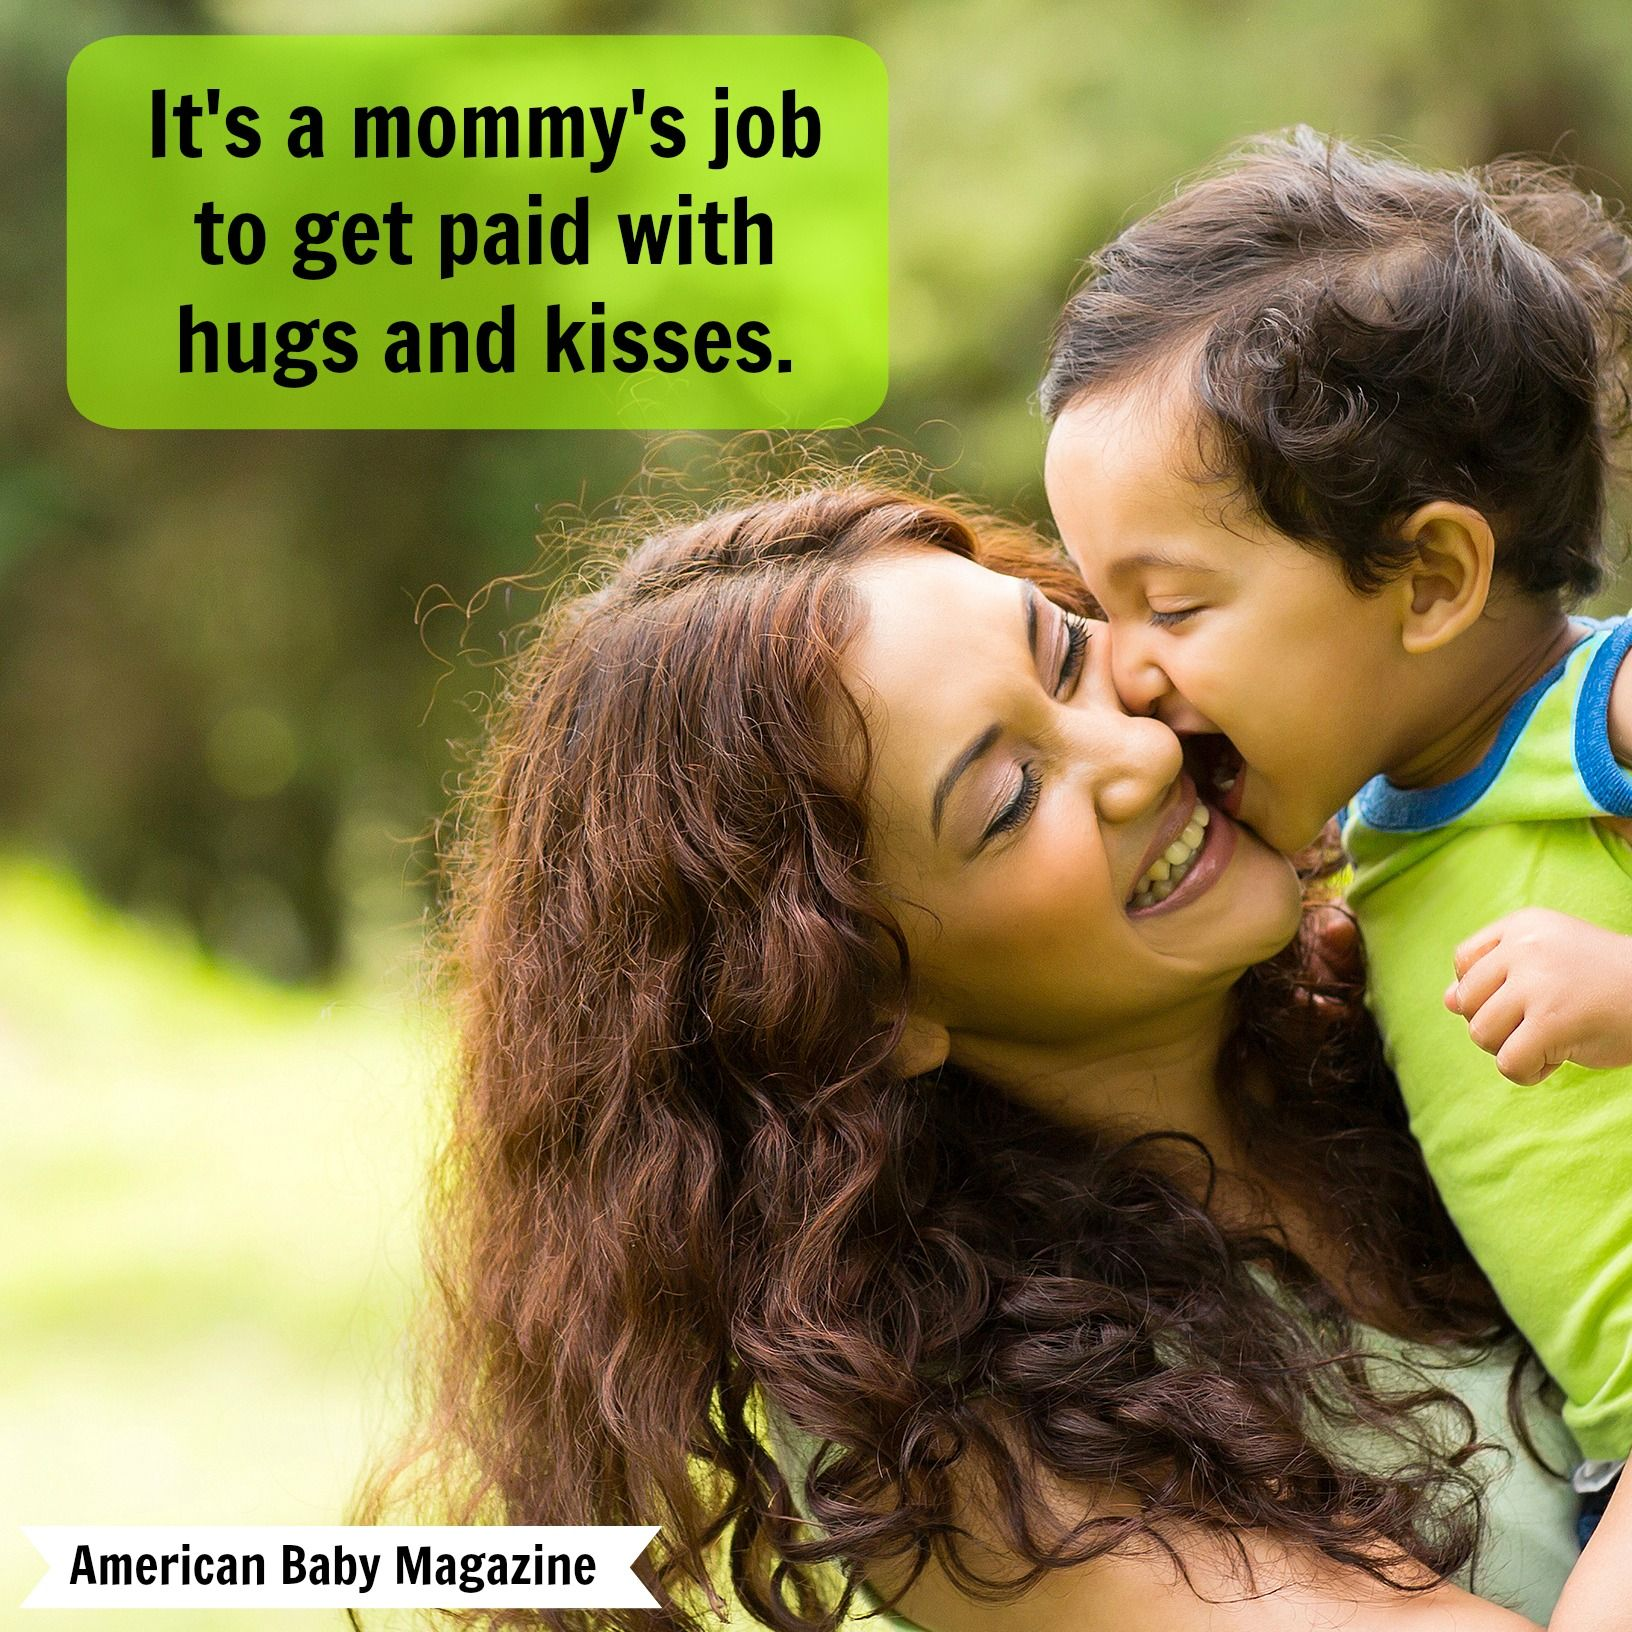 American Baby Magazine Parenting Quotes To Live By Parenting